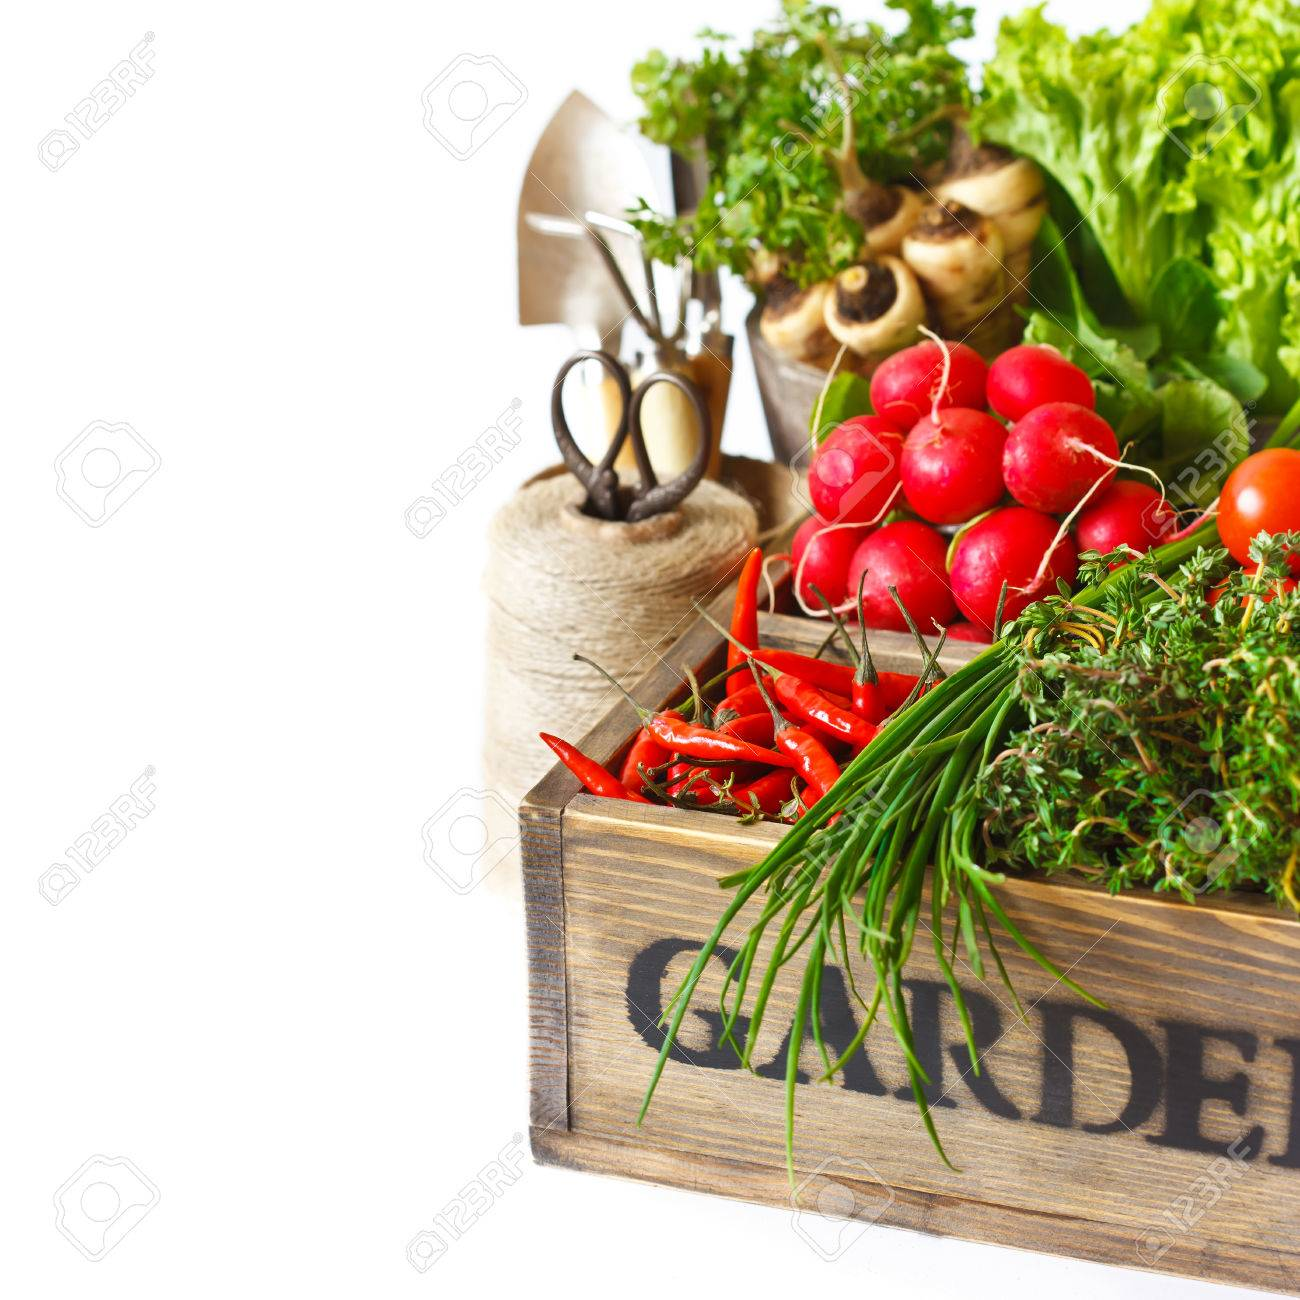 Organic Kitchen Garden Fresh Organic Kitchen Garden Vegetables On Vintage Wooden Box